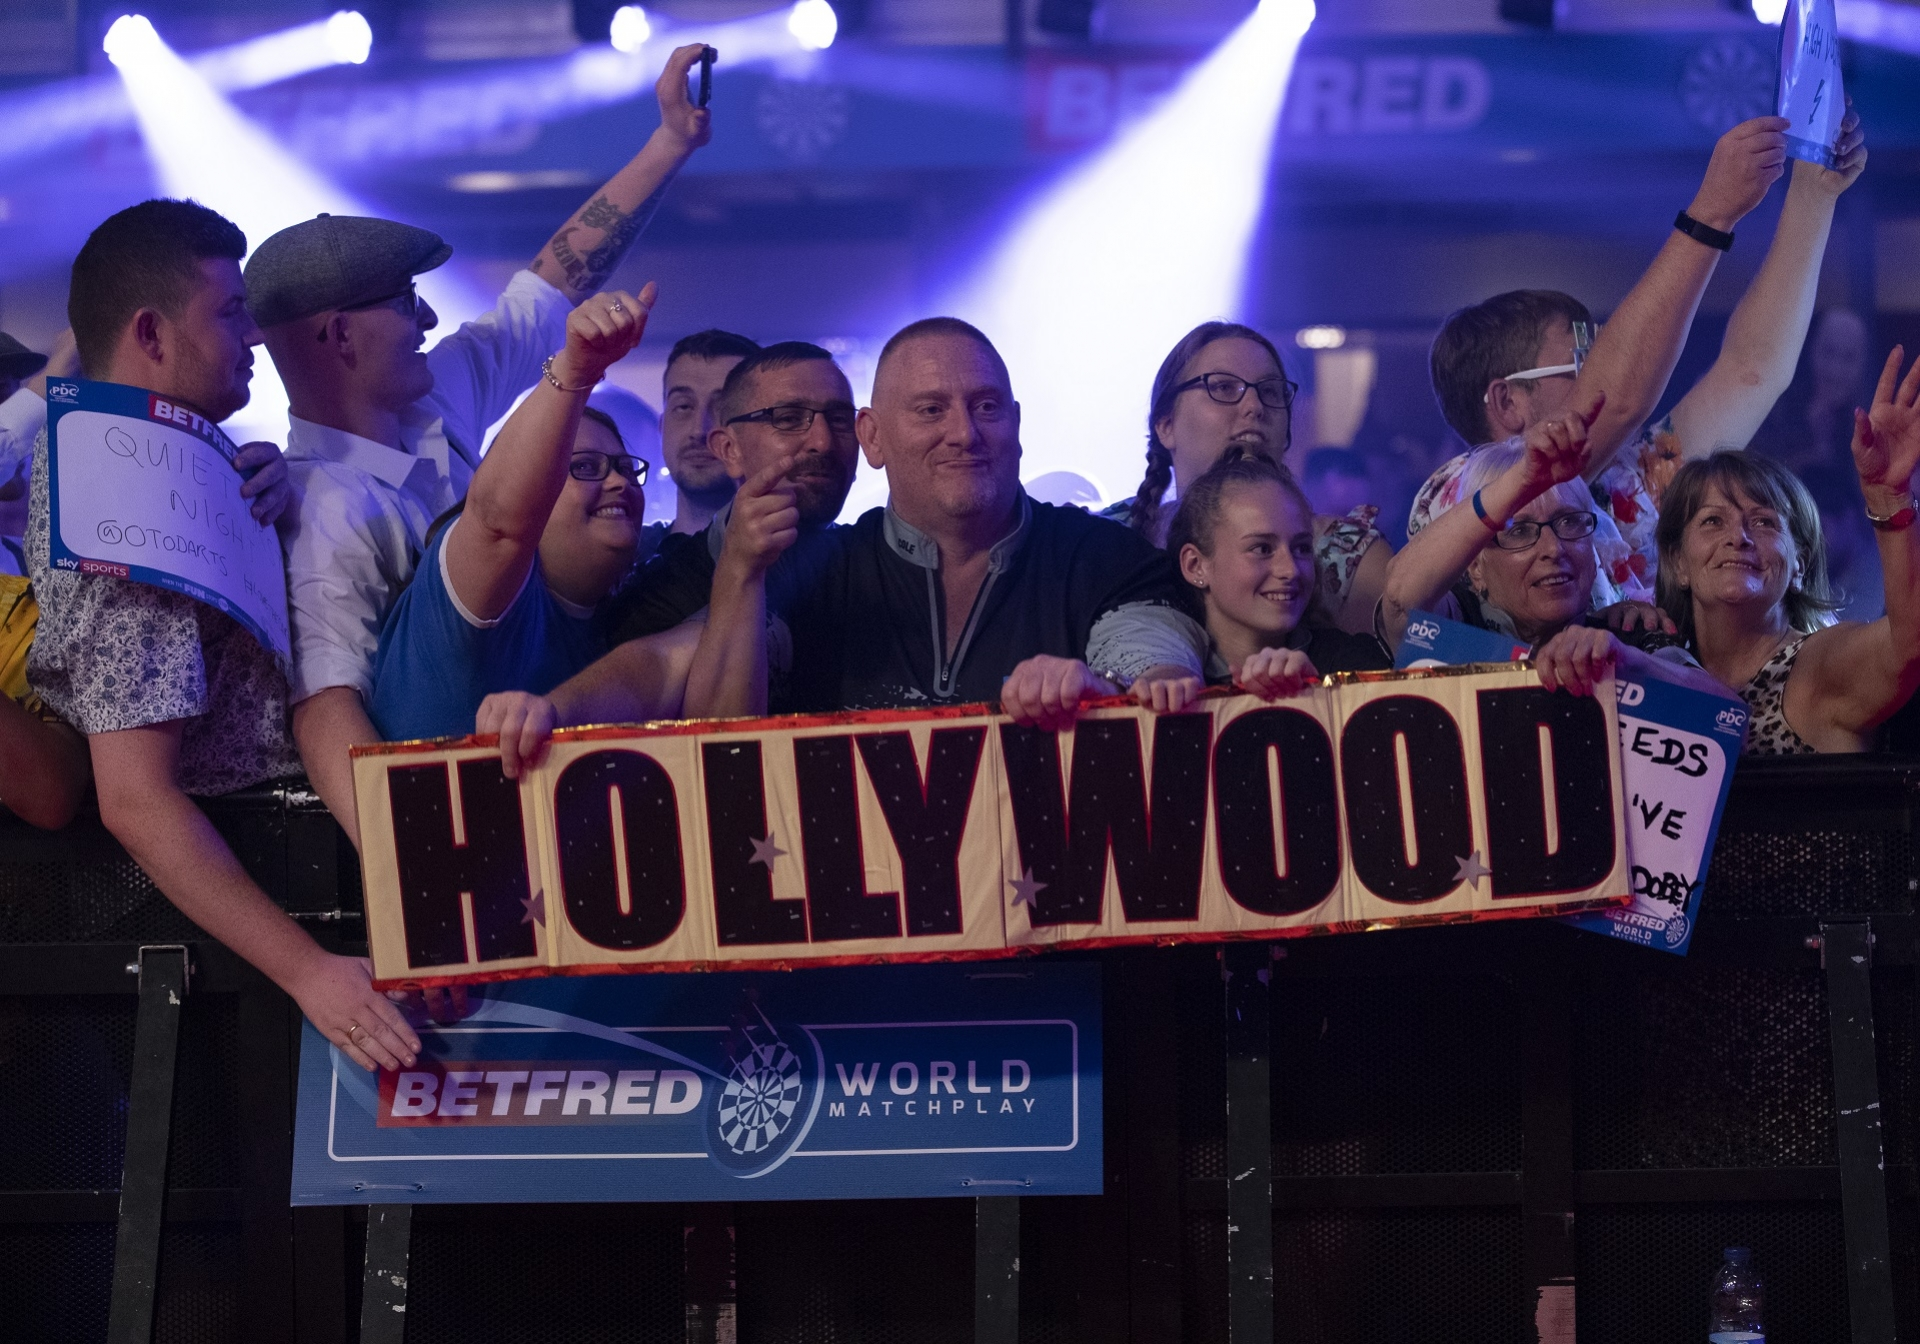 Fans at the Betfred World Matchplay